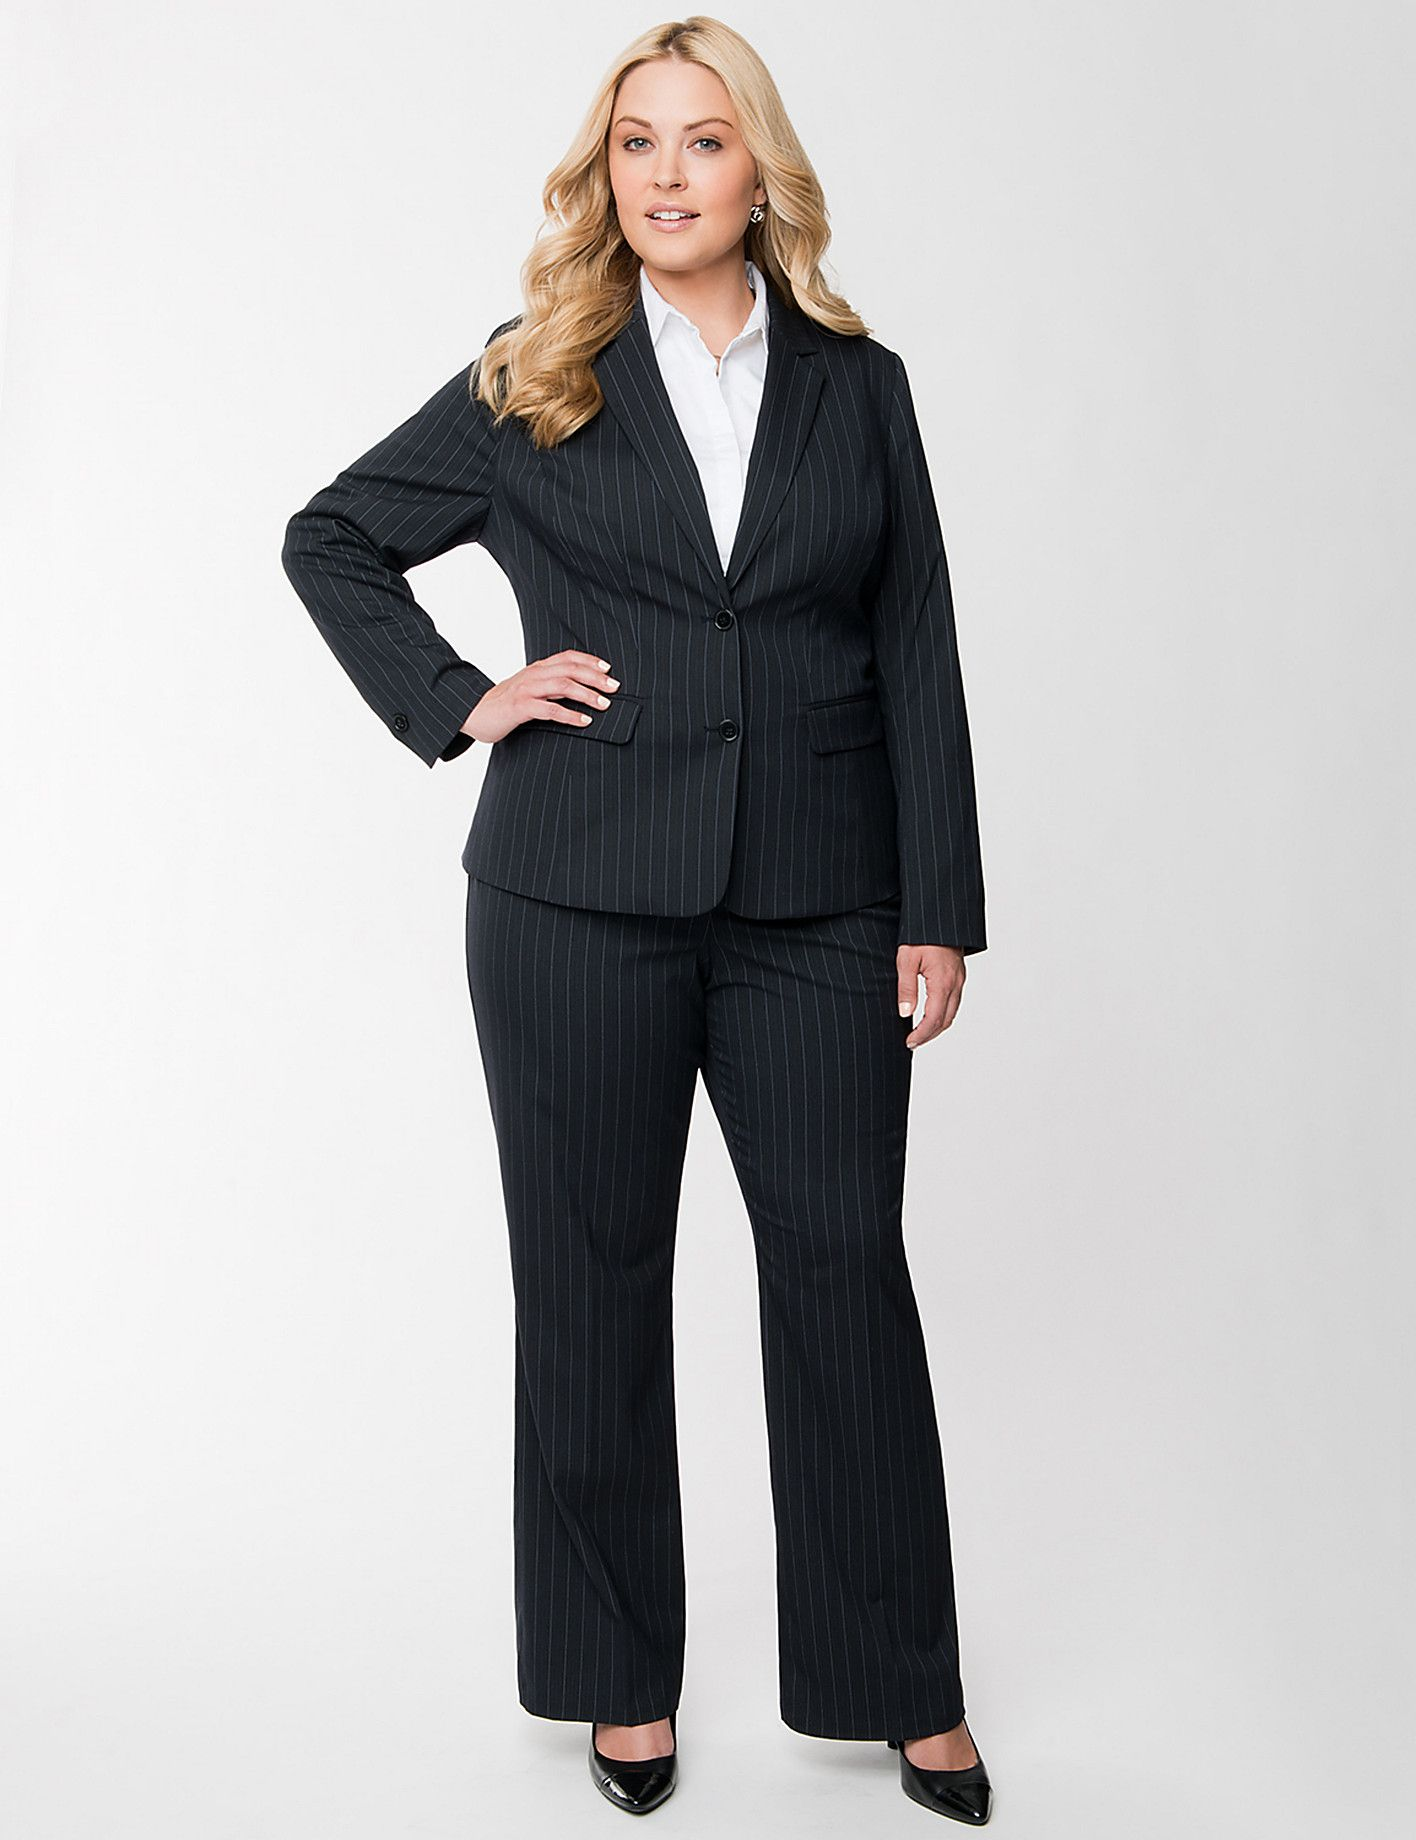 Suits-Pant-For-Plus-Size-Women  Formal Wear  Business -2571